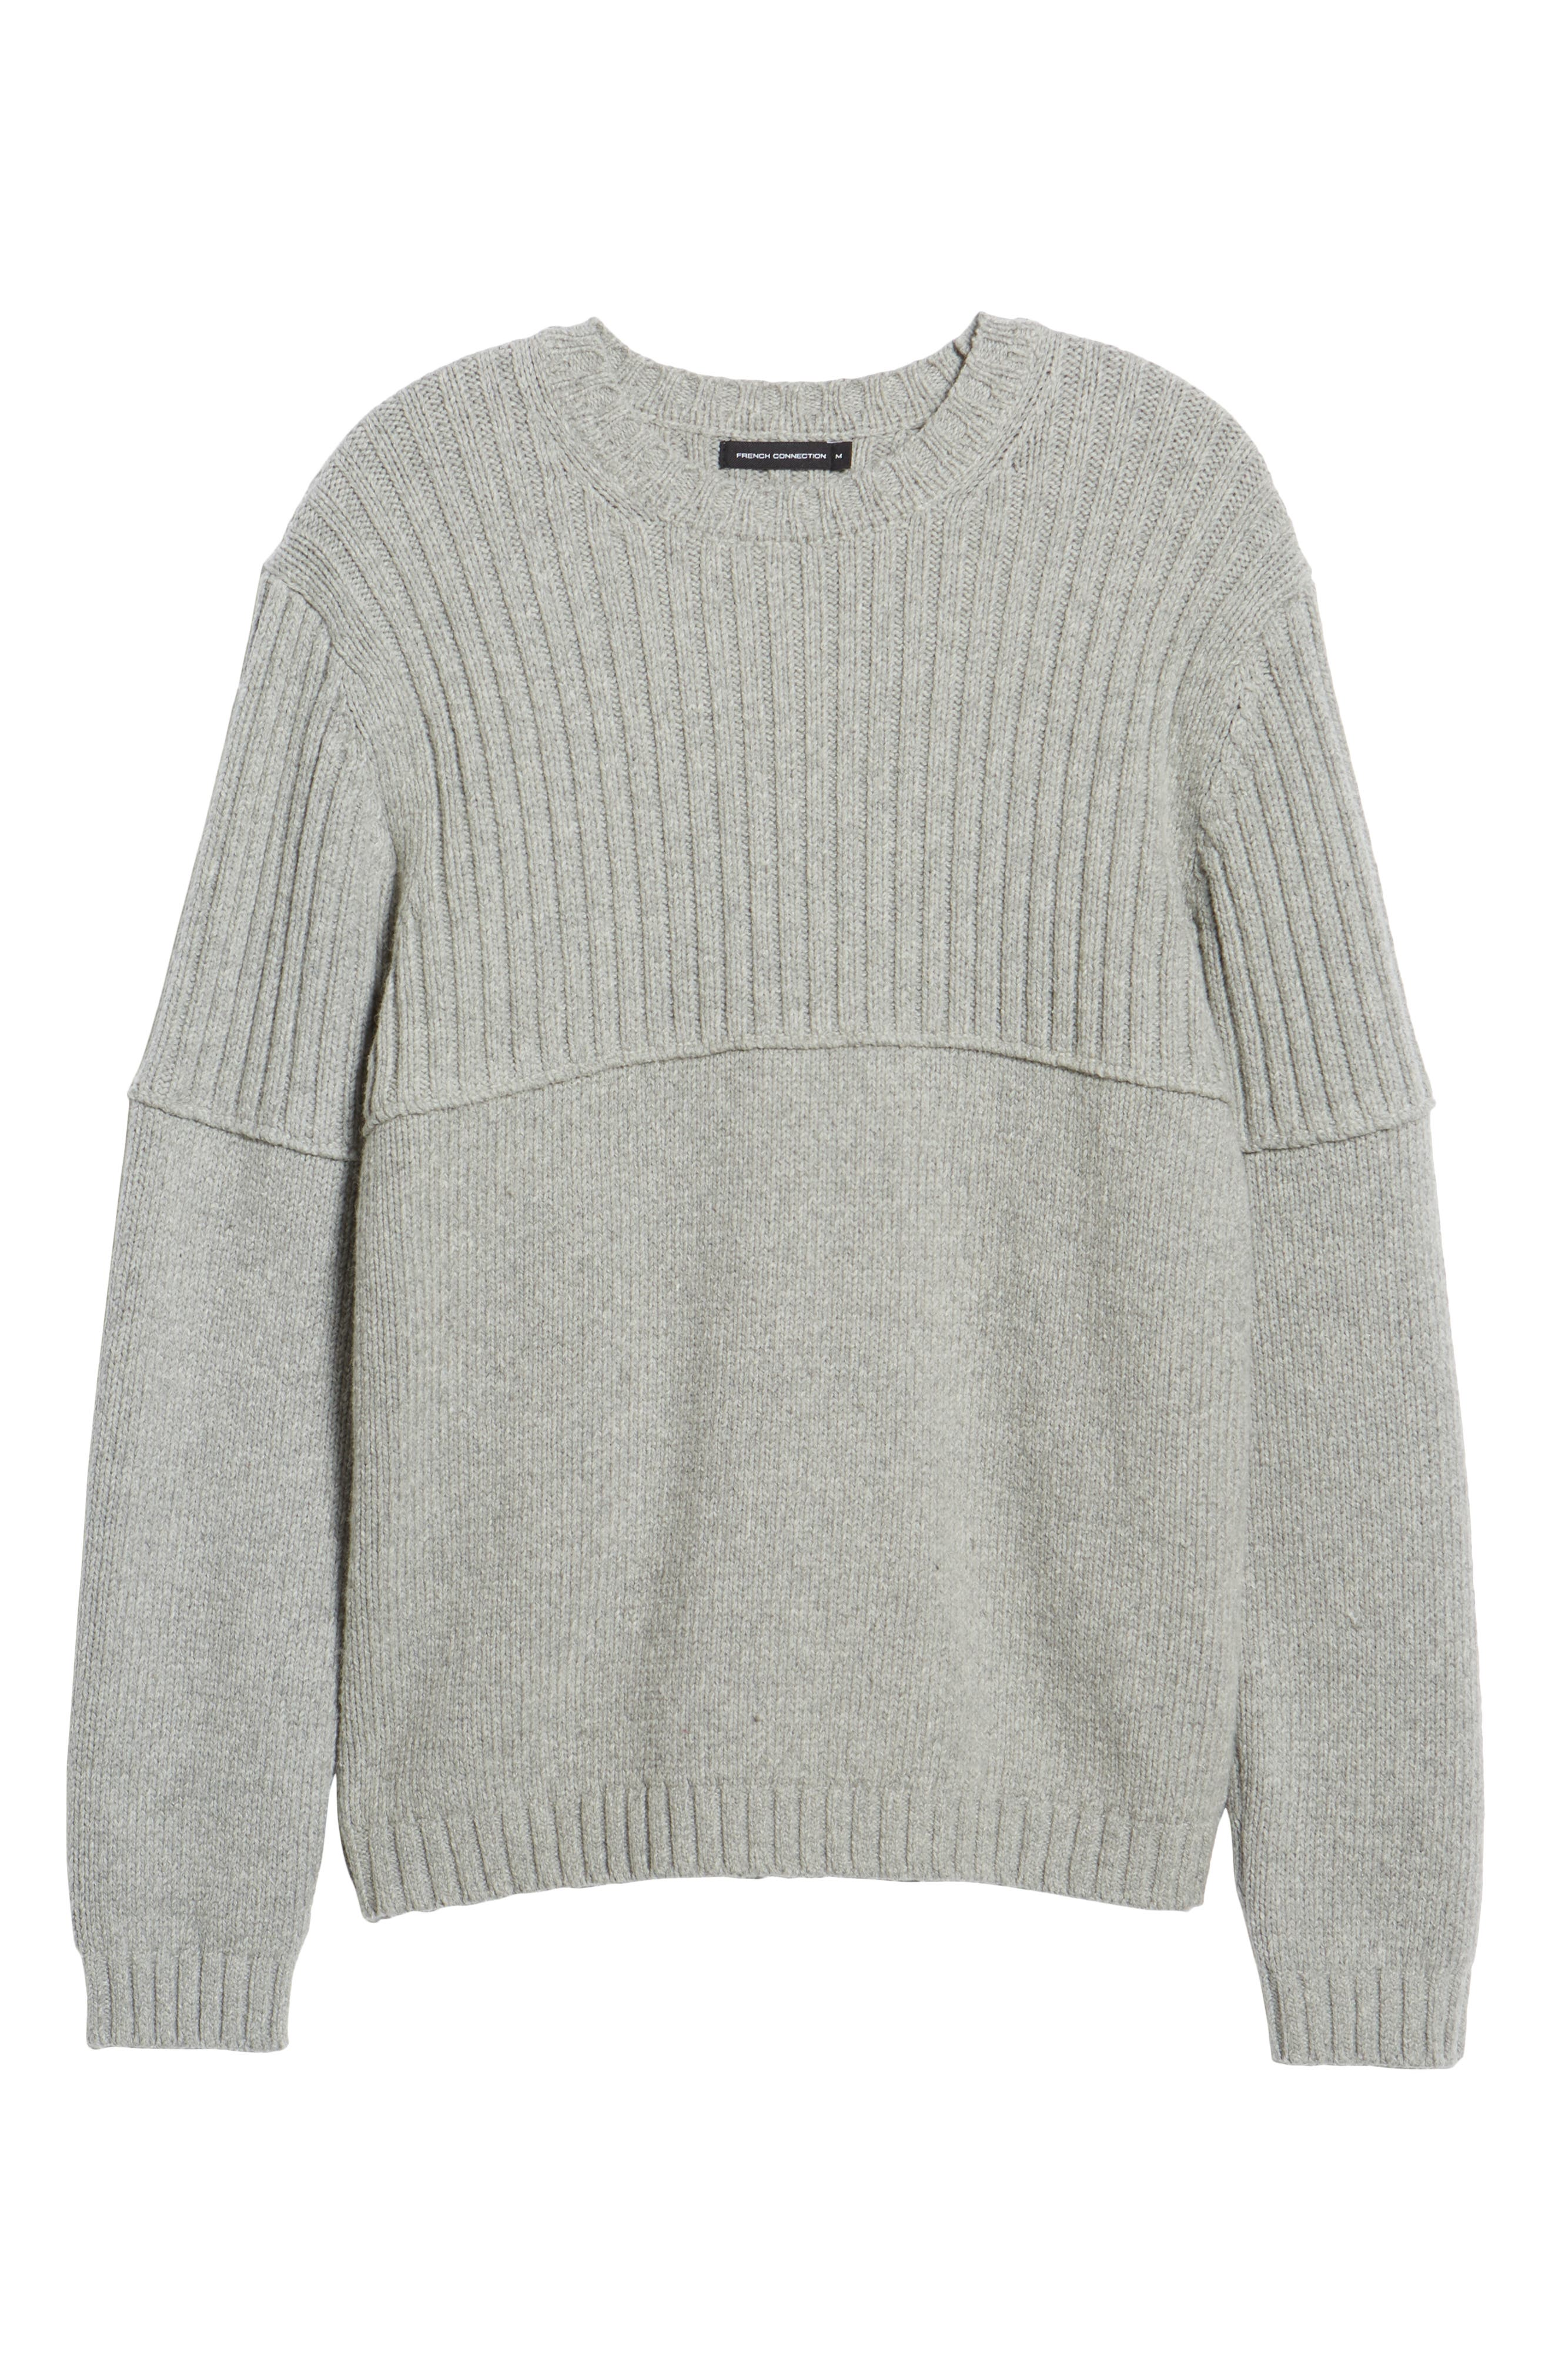 Split Linked Sweater,                             Alternate thumbnail 6, color,                             GREY MELANGE